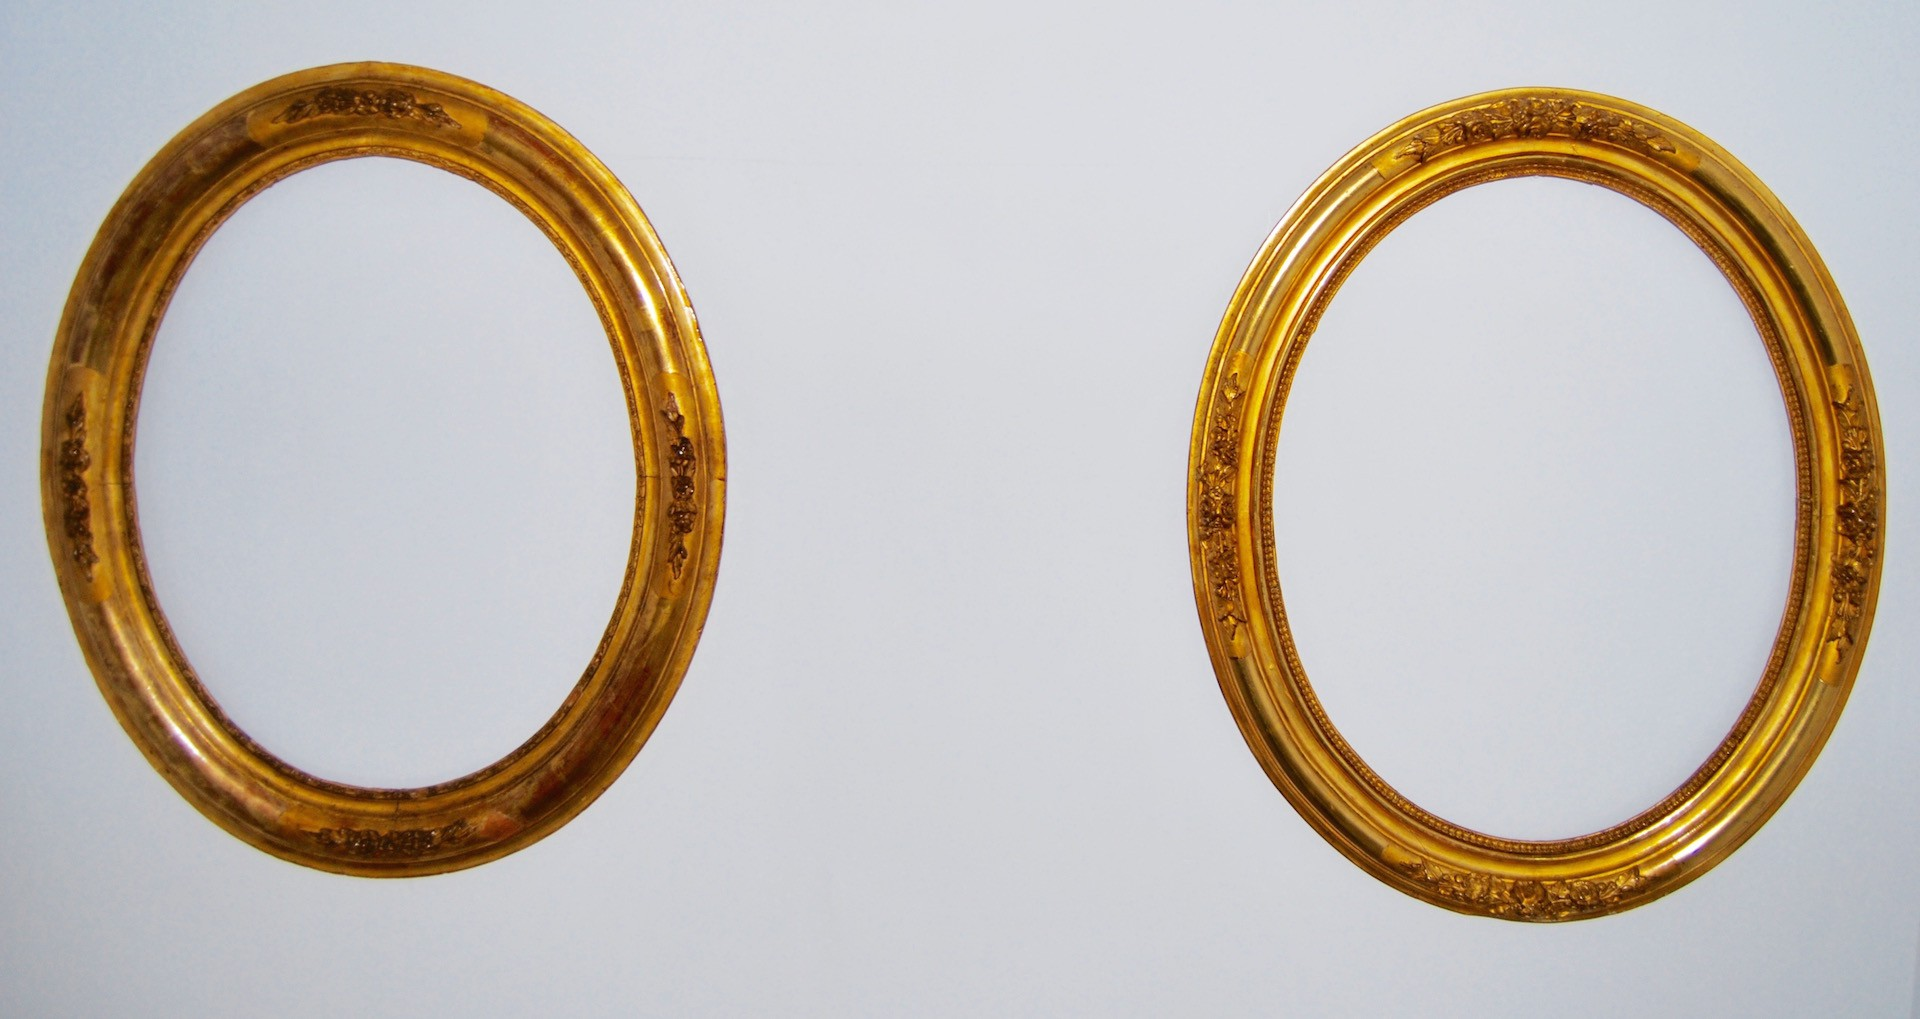 Pair of golden oval frames, 19th century.